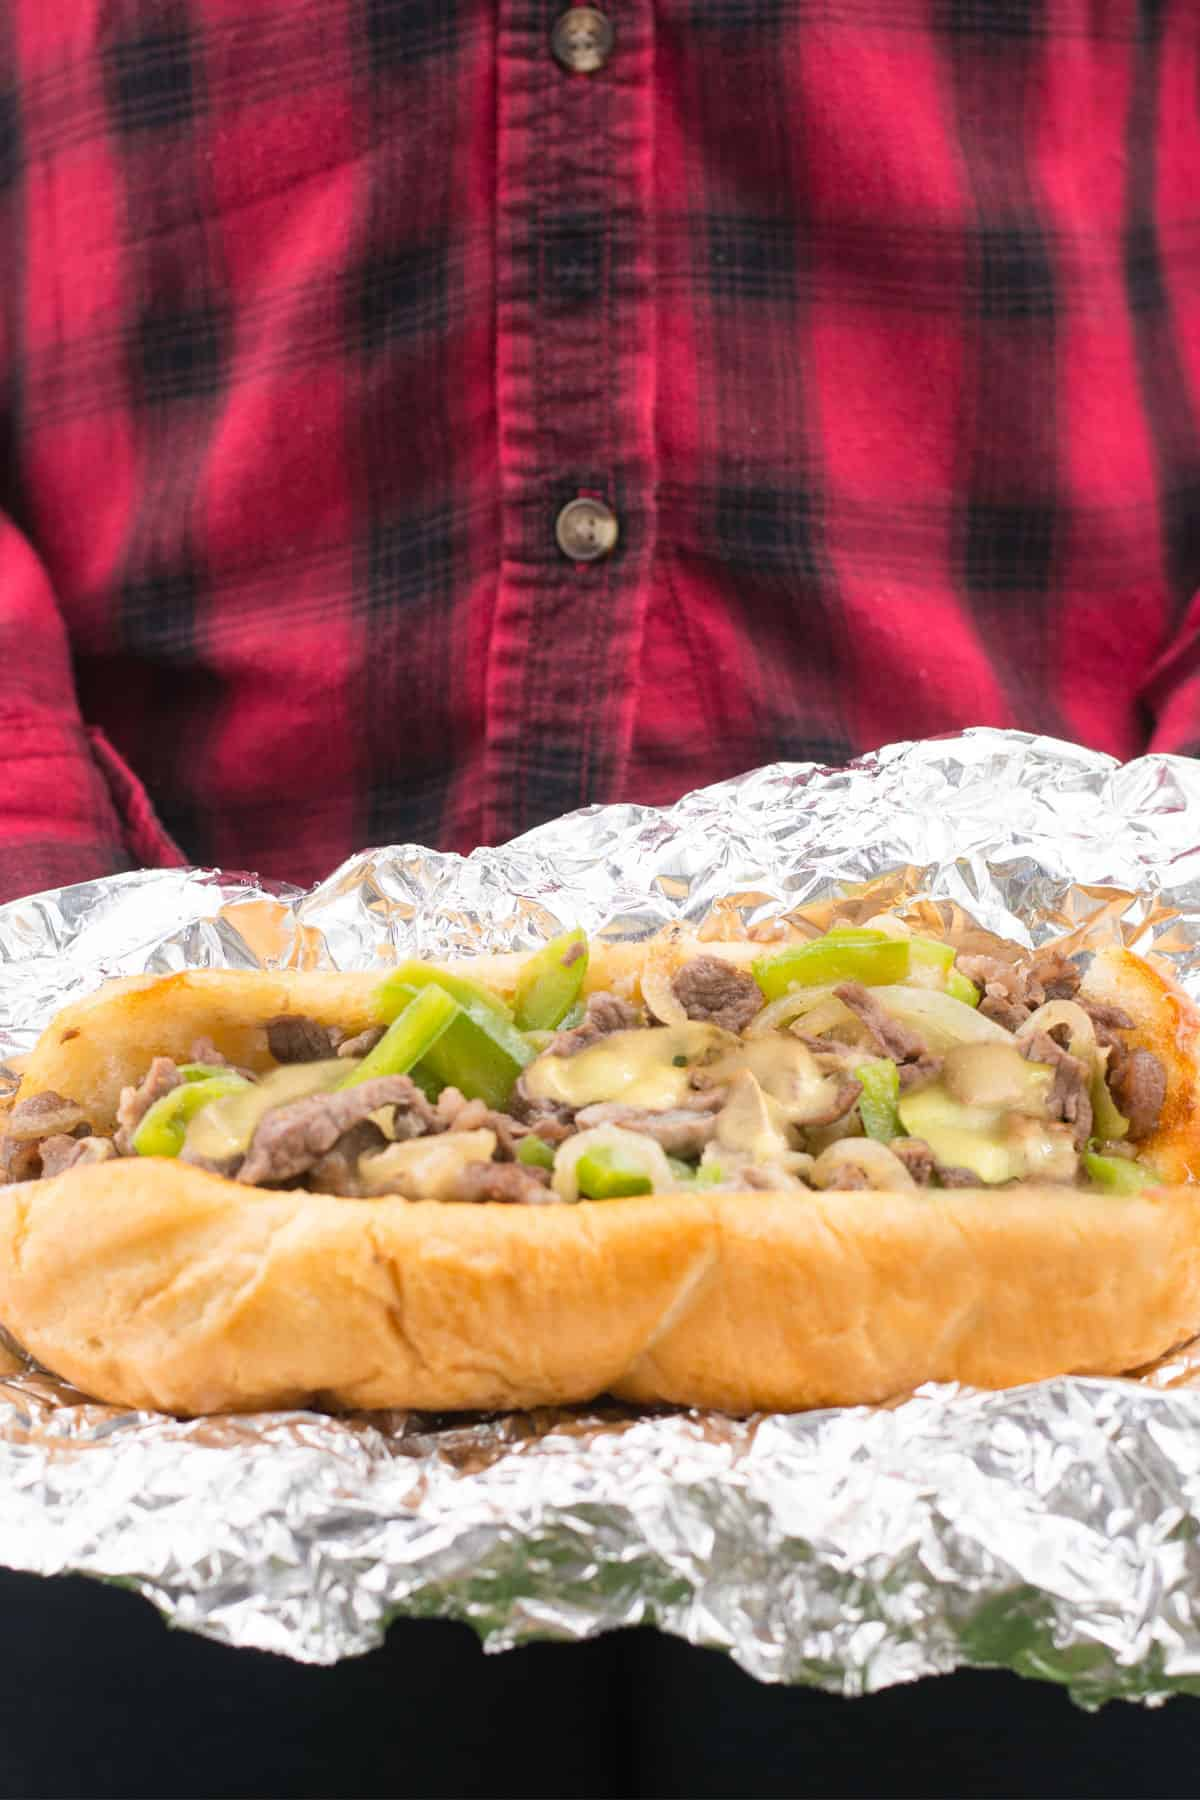 The best Philly cheesesteak recipe wrapped in foil and opened with a person wearing a red and black plaid shirt.